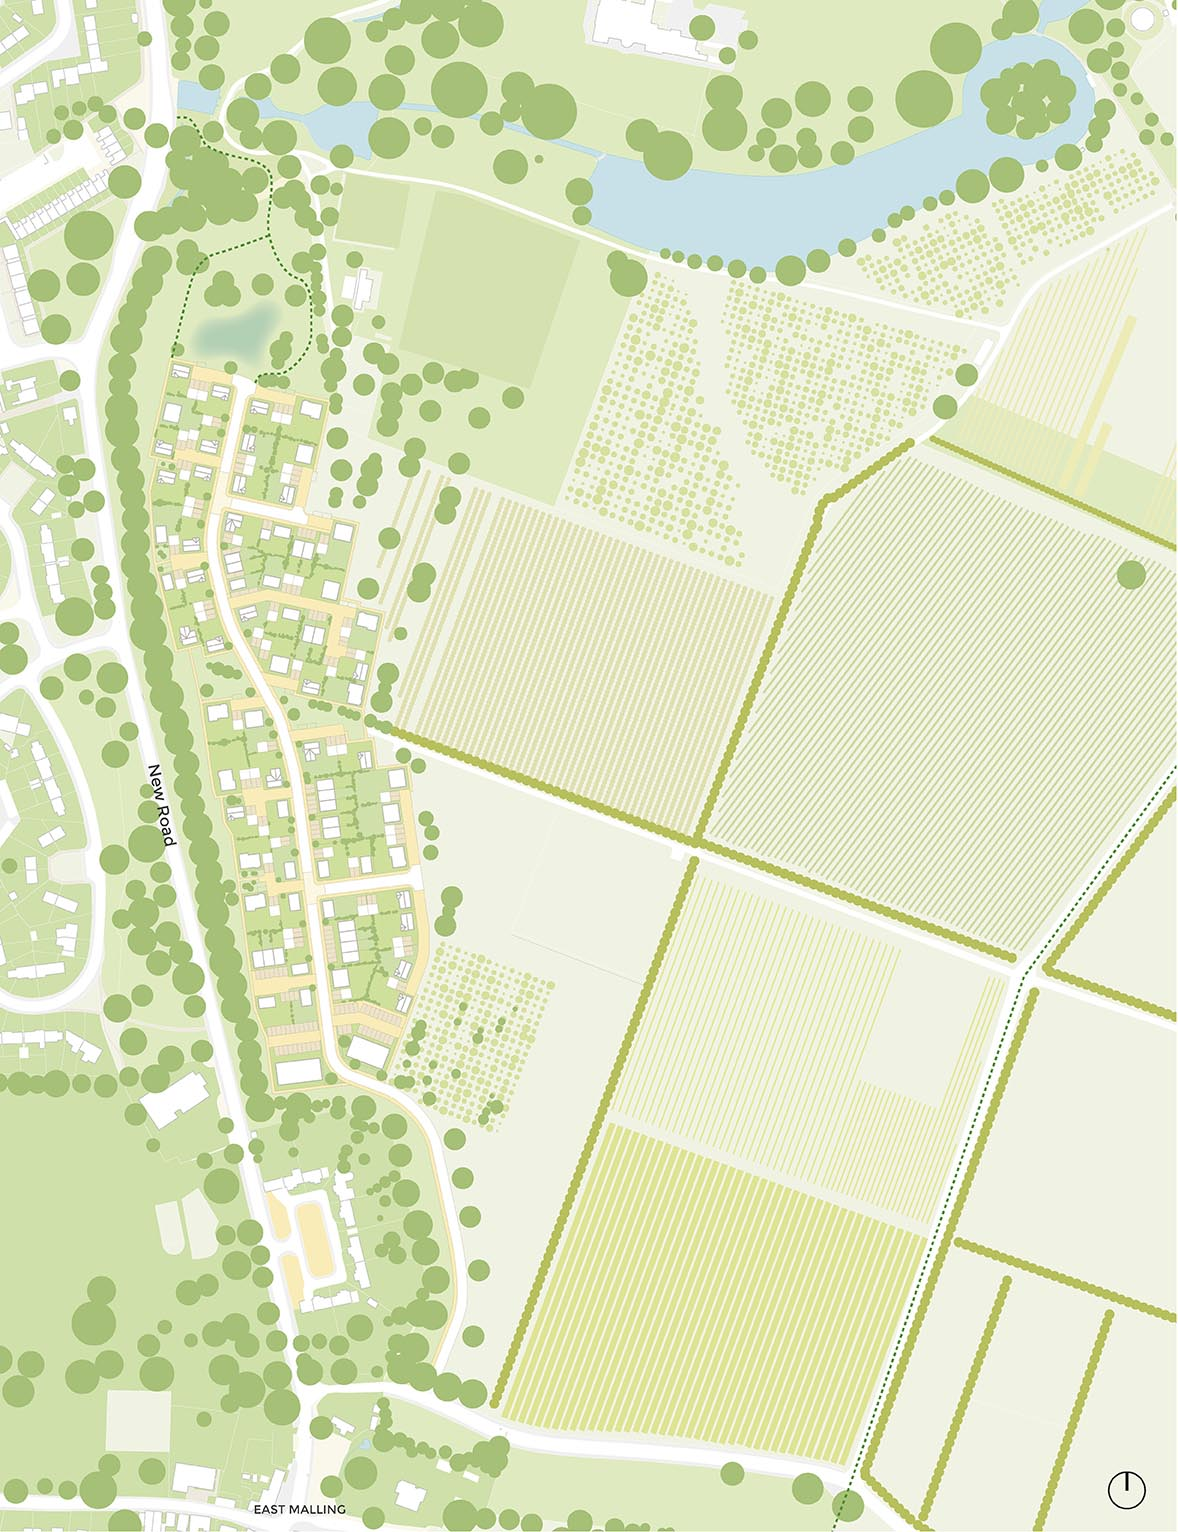 Parkside illustrative master plan